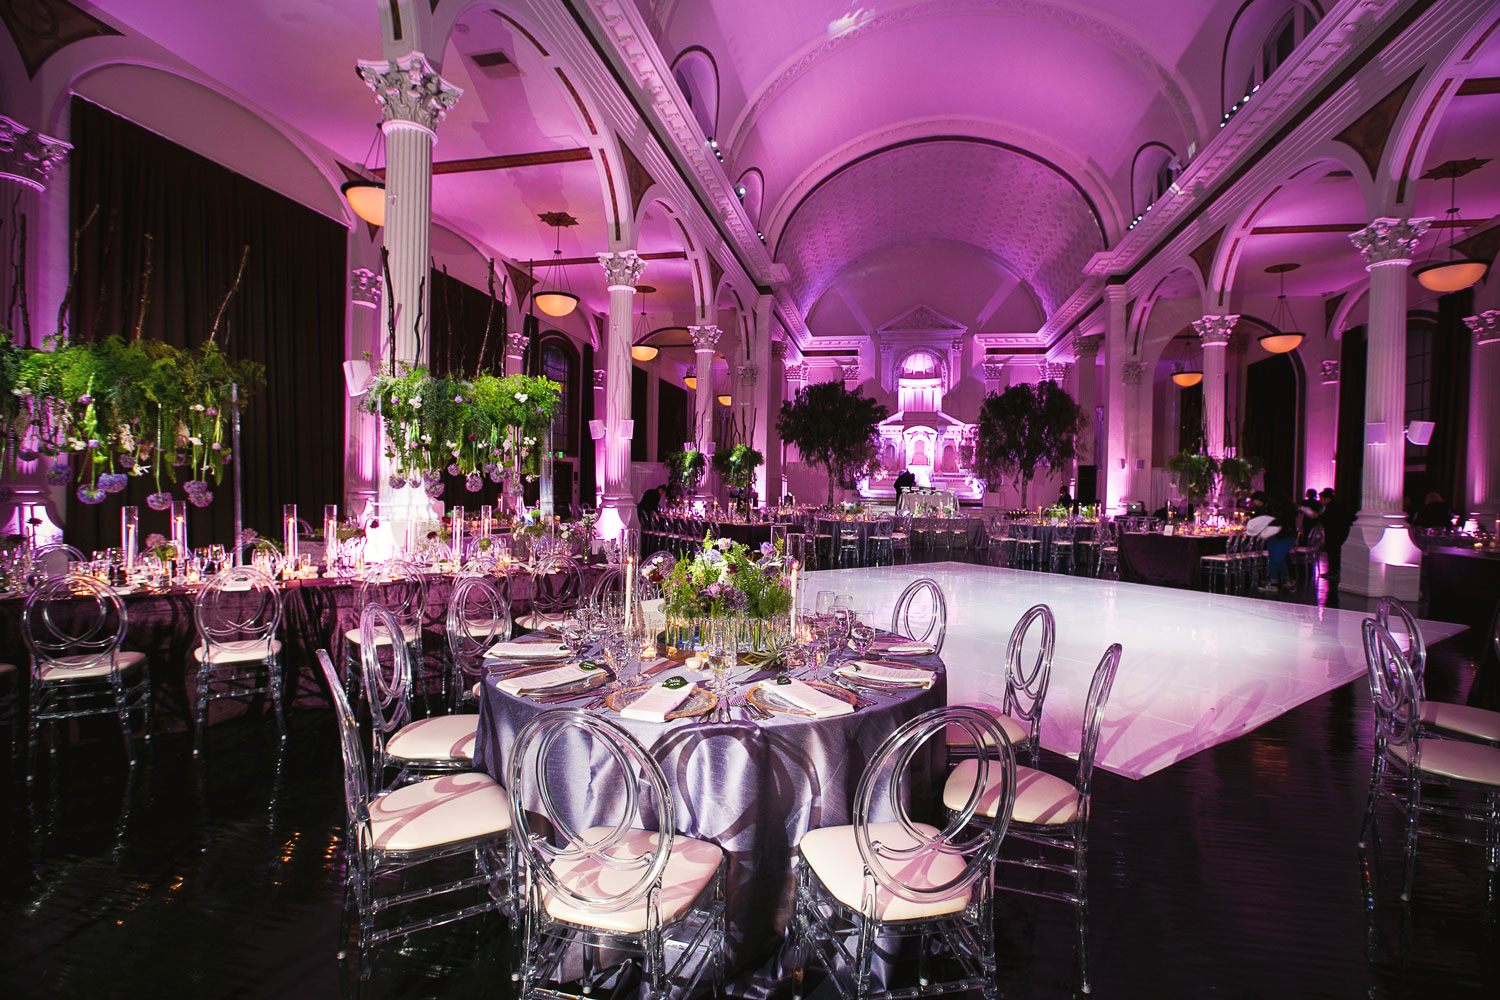 Wedding reception sterling engagements luxe linen vibiana purple lighting inside weddings spring 2018 issue